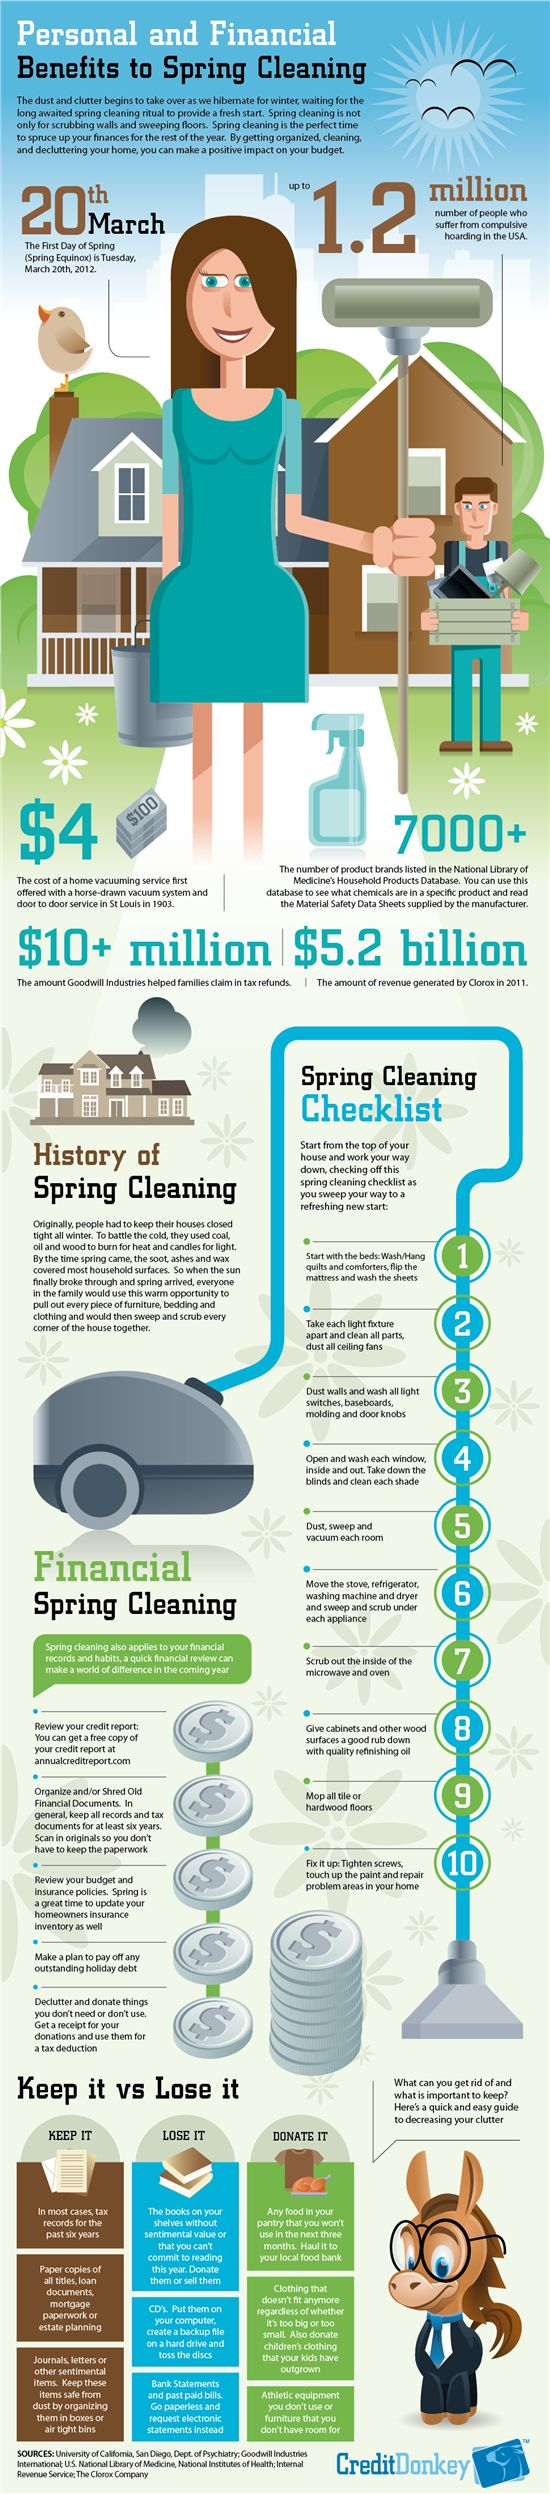 financial benefits to spring cleaning